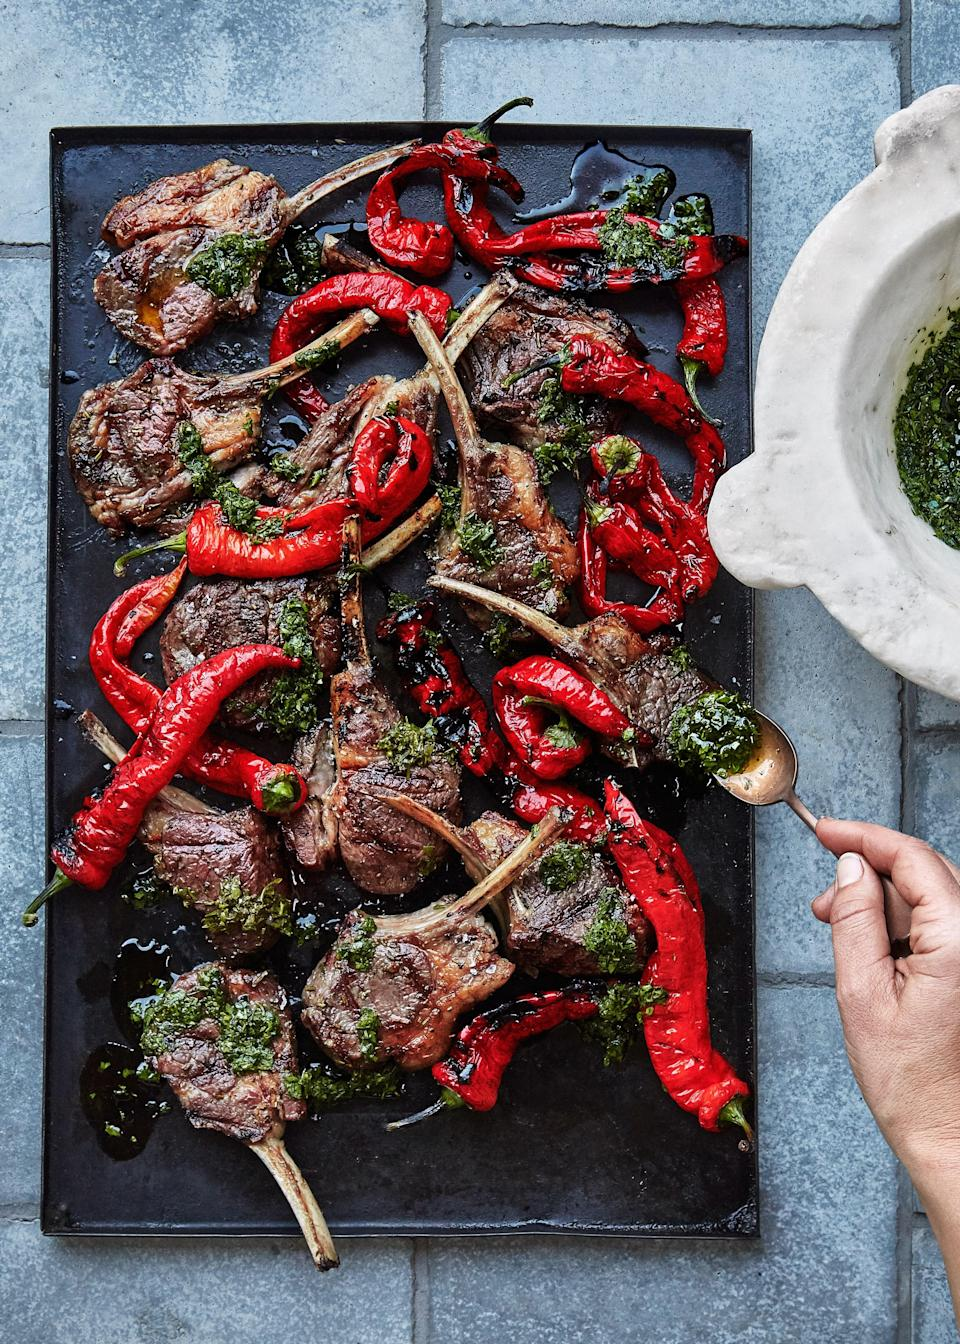 """Lamb chops need enough time on the grill to let the fat render. You'll get flare-ups as the fat melts onto the coals—that's inevitable—but instead of letting the chops char, just move them to a new spot as needed and keep going. <a href=""""https://www.epicurious.com/recipes/food/views/grilled-lamb-chops-and-peppers?mbid=synd_yahoo_rss"""" rel=""""nofollow noopener"""" target=""""_blank"""" data-ylk=""""slk:See recipe."""" class=""""link rapid-noclick-resp"""">See recipe.</a>"""